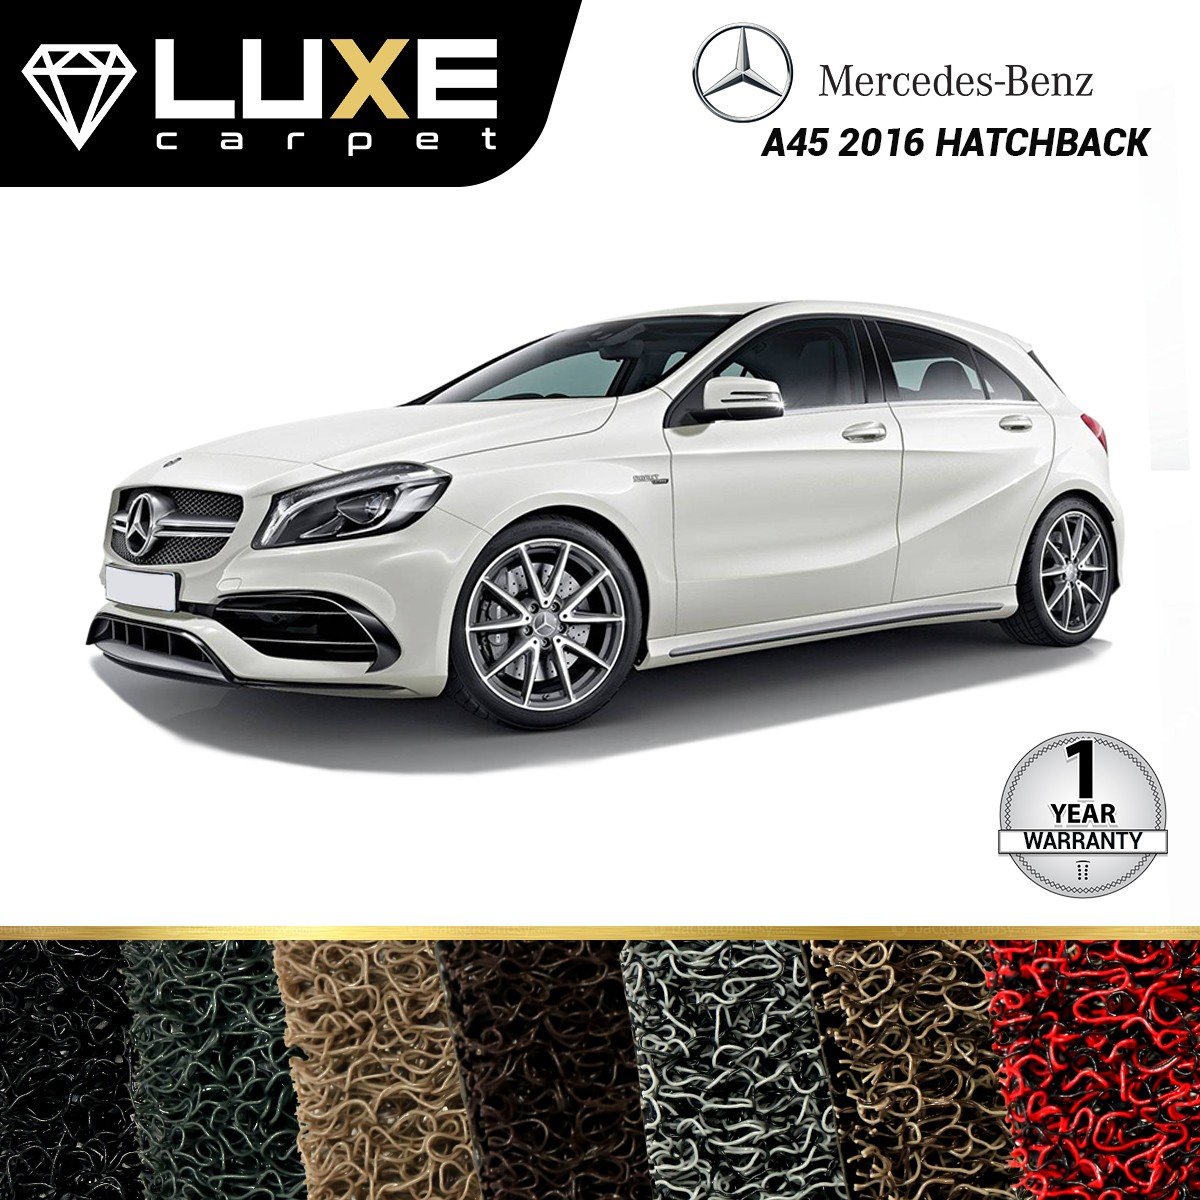 KARPET LUXE MERCEDES BENZ A45 HATCHBACK TAHUN 2016 - GOLD SERIES - NON BAGASI